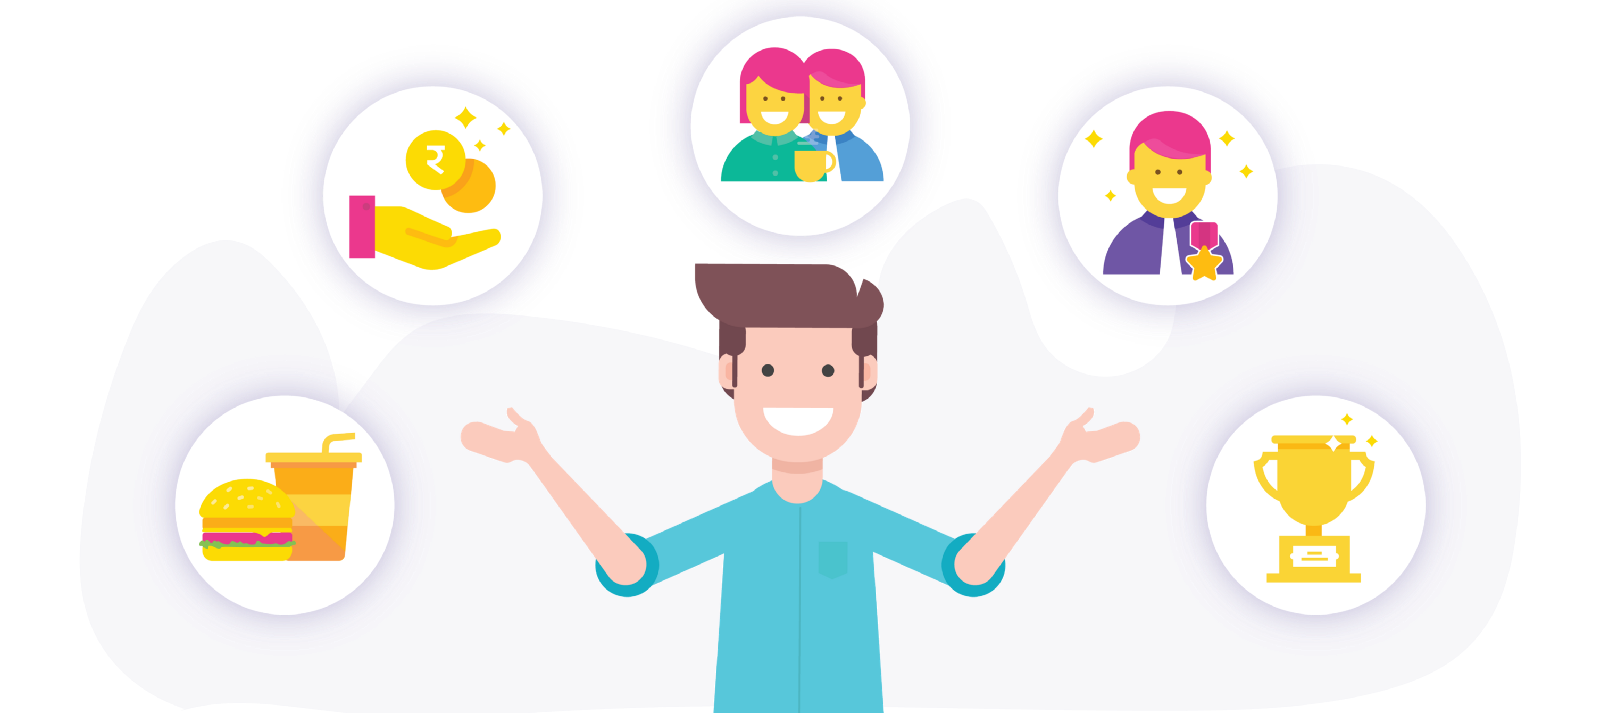 Employee clipart employee satisfaction. Why you should add